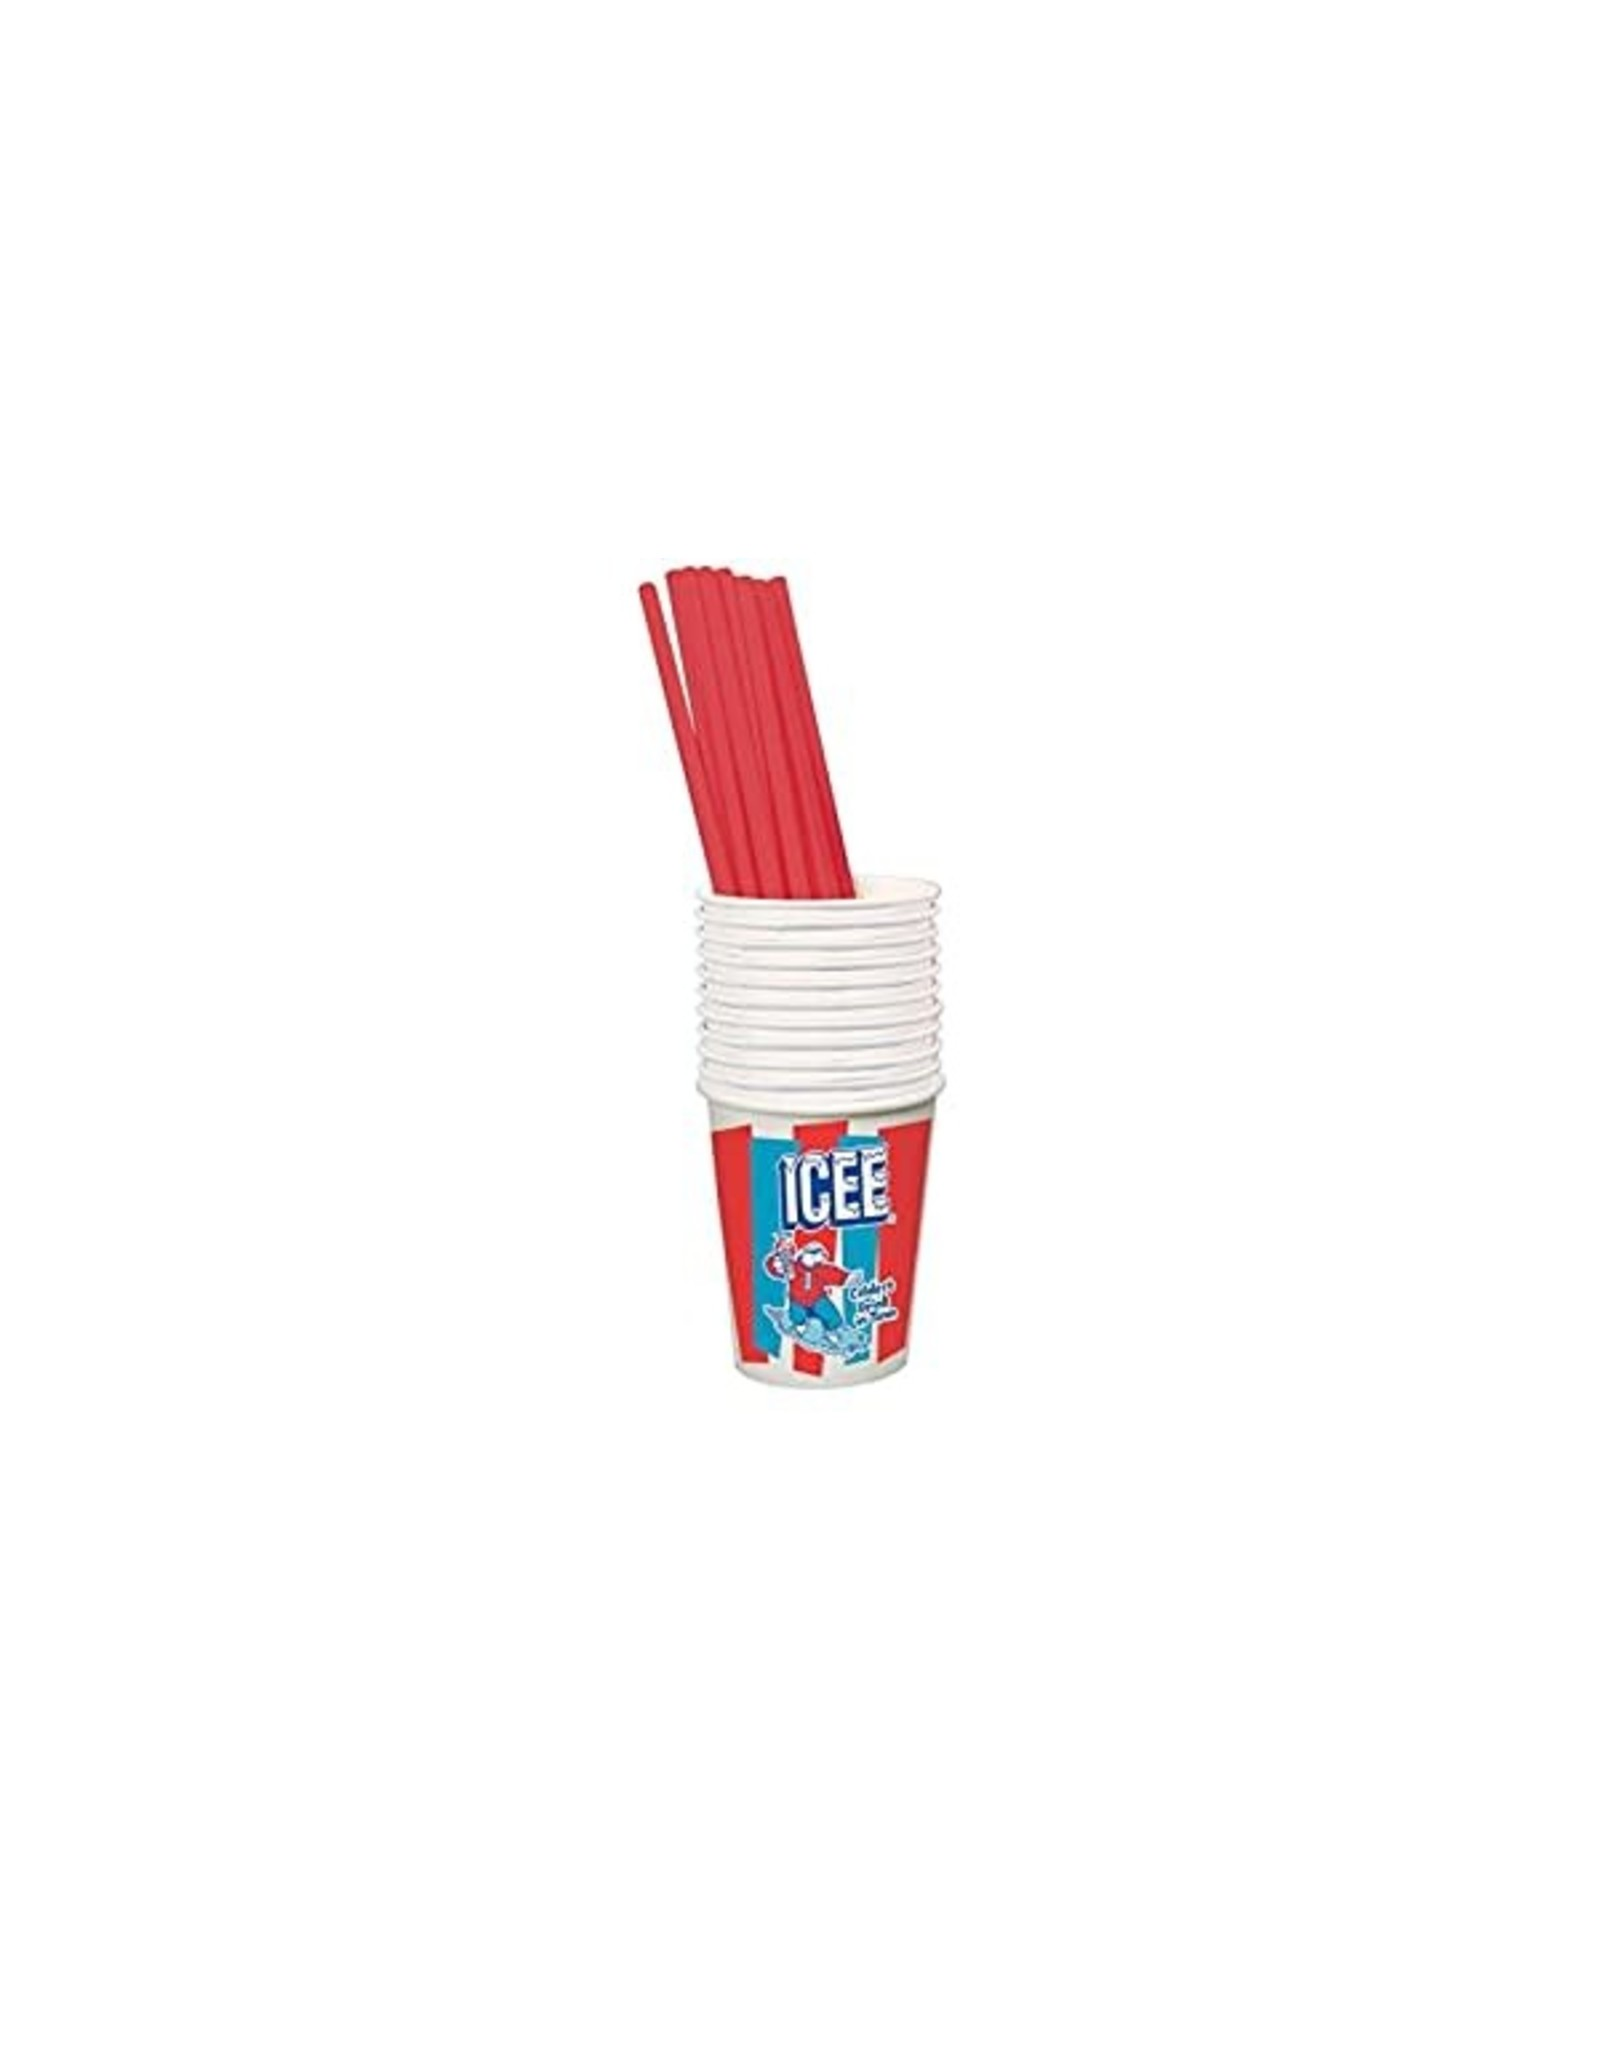 Iscream ICEE 20 Paper Cups & Straws